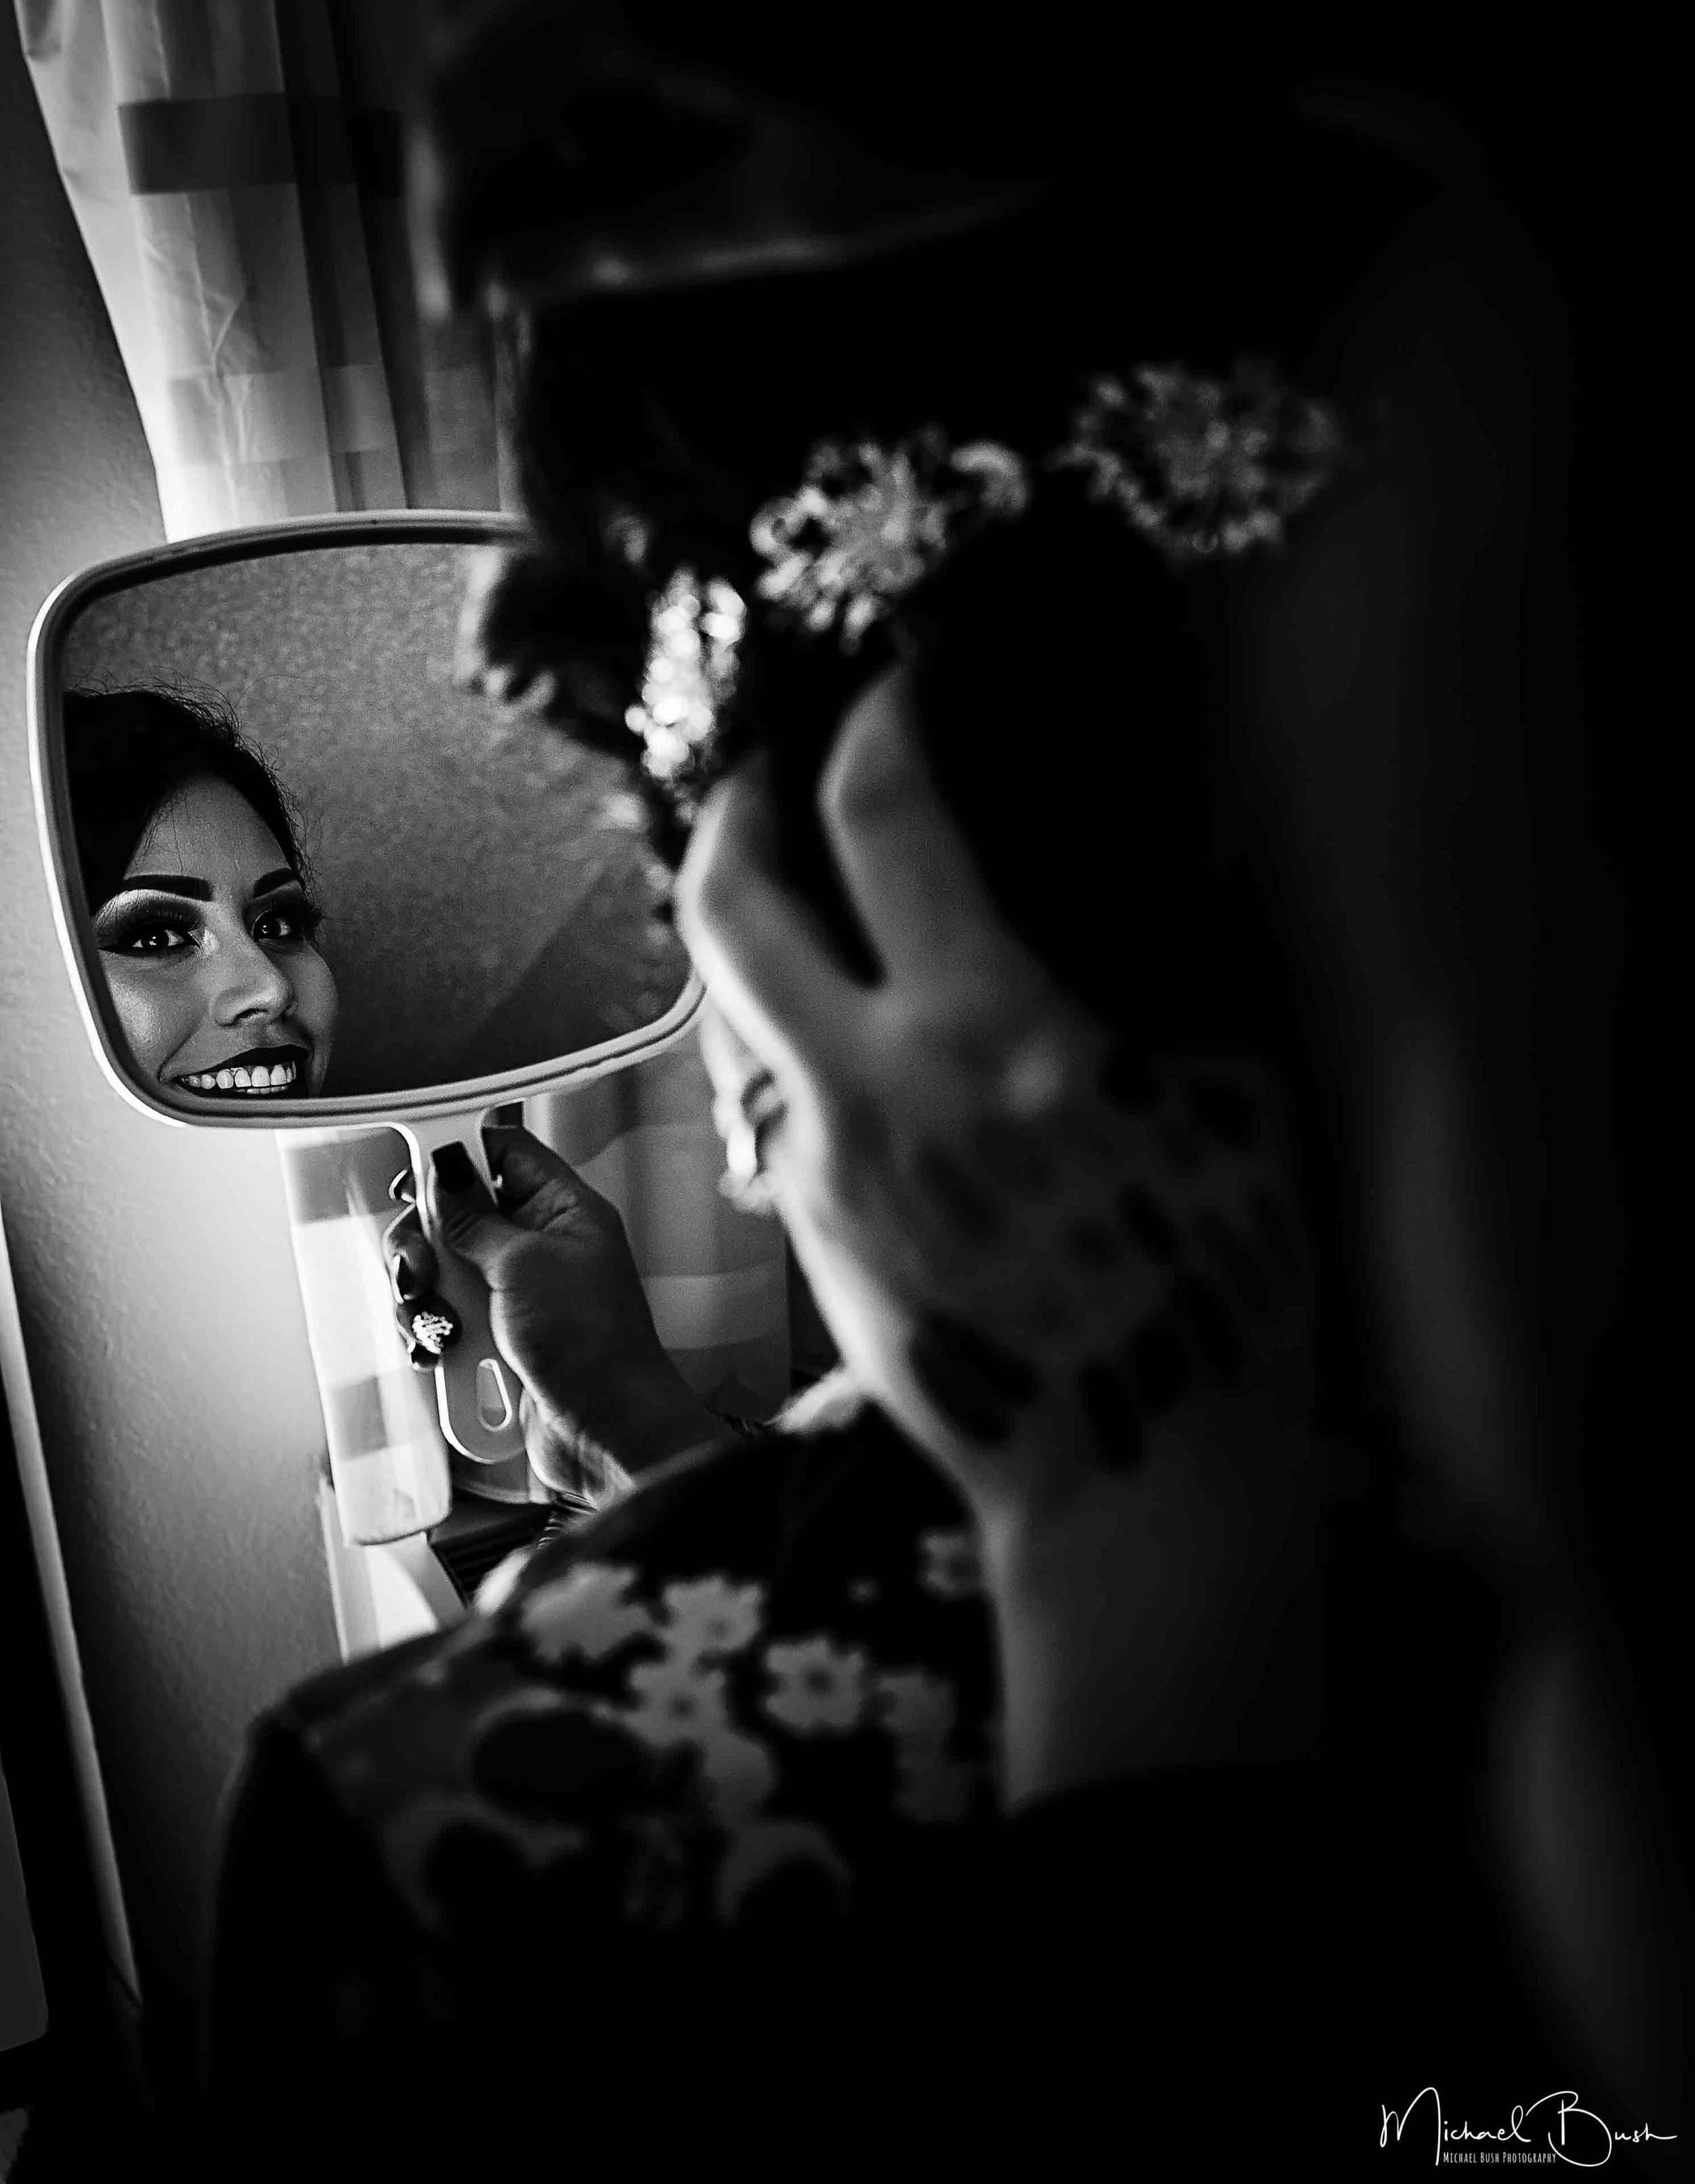 Wedding-Details-Bride-Fort Worth-colors-Getting Ready-MUA-brides-b&w-reflection-mirror.jpg